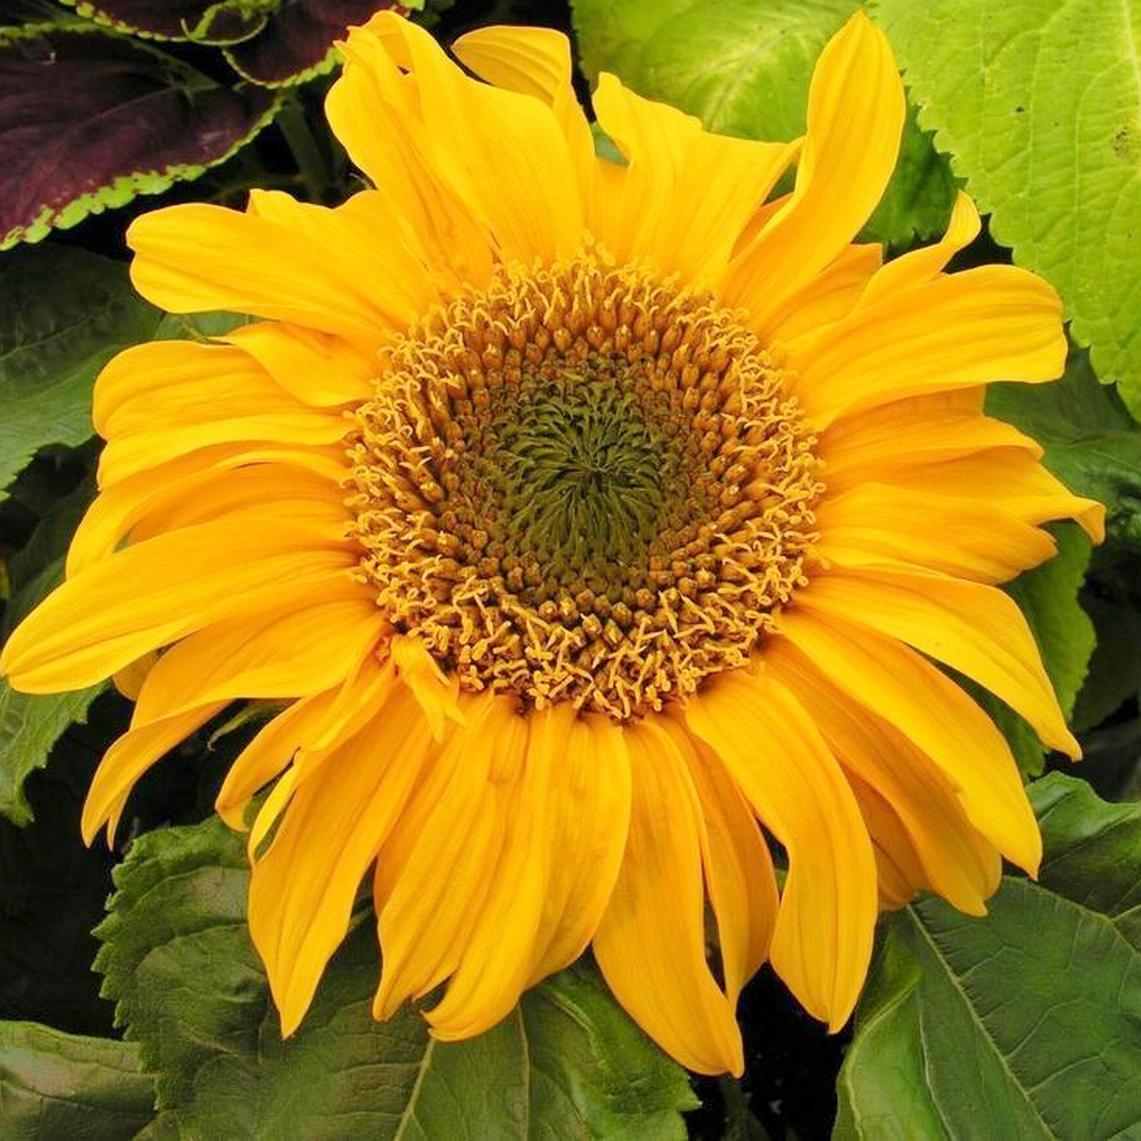 Sunflower Seeds (Dwarf) - Incredible